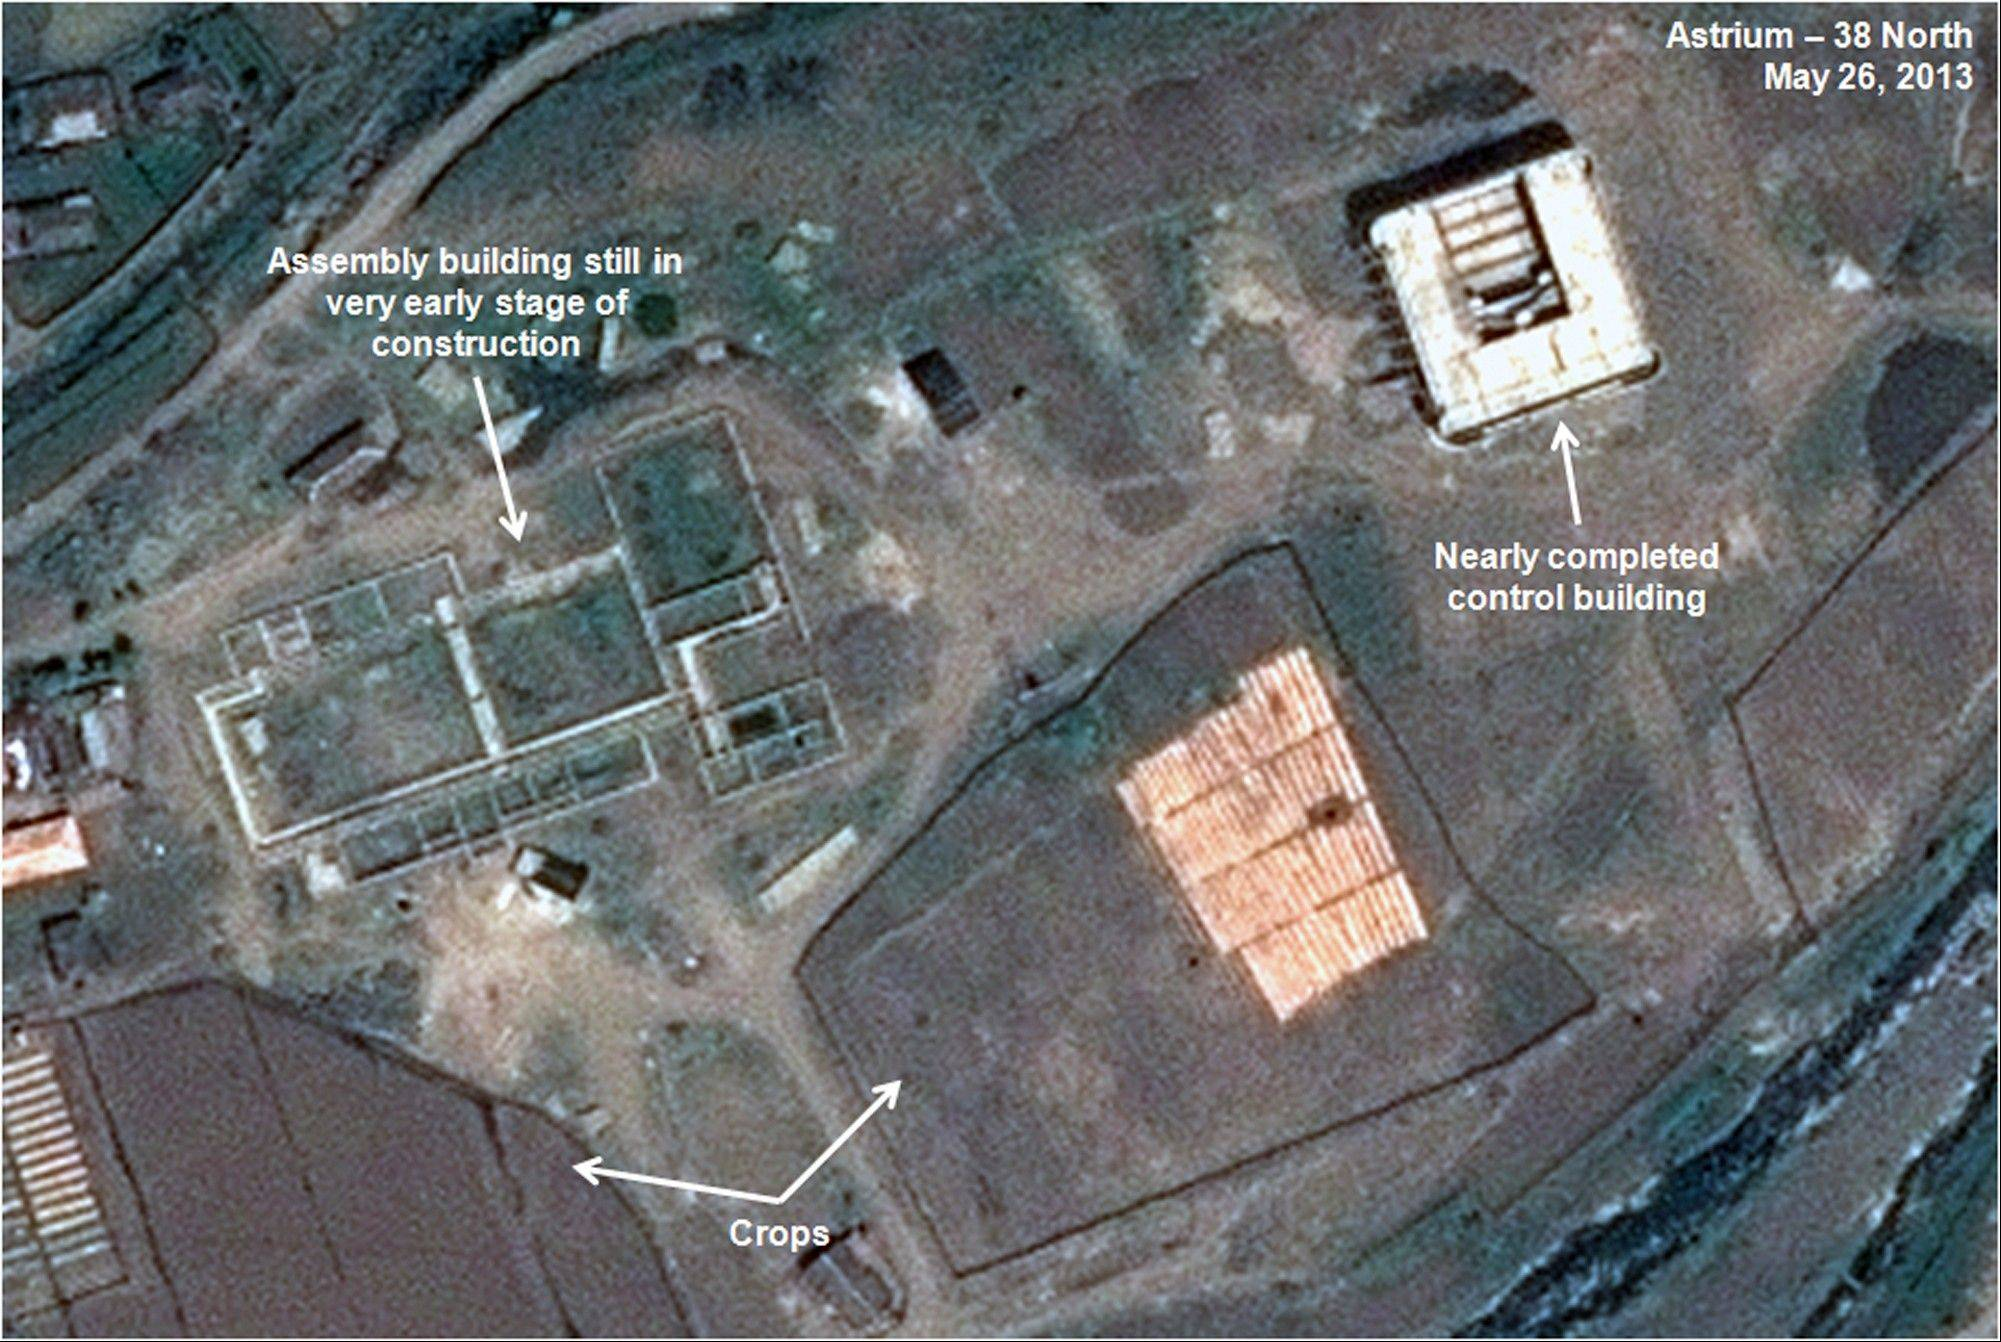 This May 26, 2013, satellite image shows an unfinished new missile assembly building, top left, and control center, top right, at the Tonghae facility in North Korea. An eight-month construction standstill at the North Korean site meant to launch bigger and better long-range rockets may signal Pyongyang is slowing or even stopping development of larger rockets, according to a new analysis of recent satellite imagery. (AP Photo/Astrium � 38 North) CREDIT MANDATORY